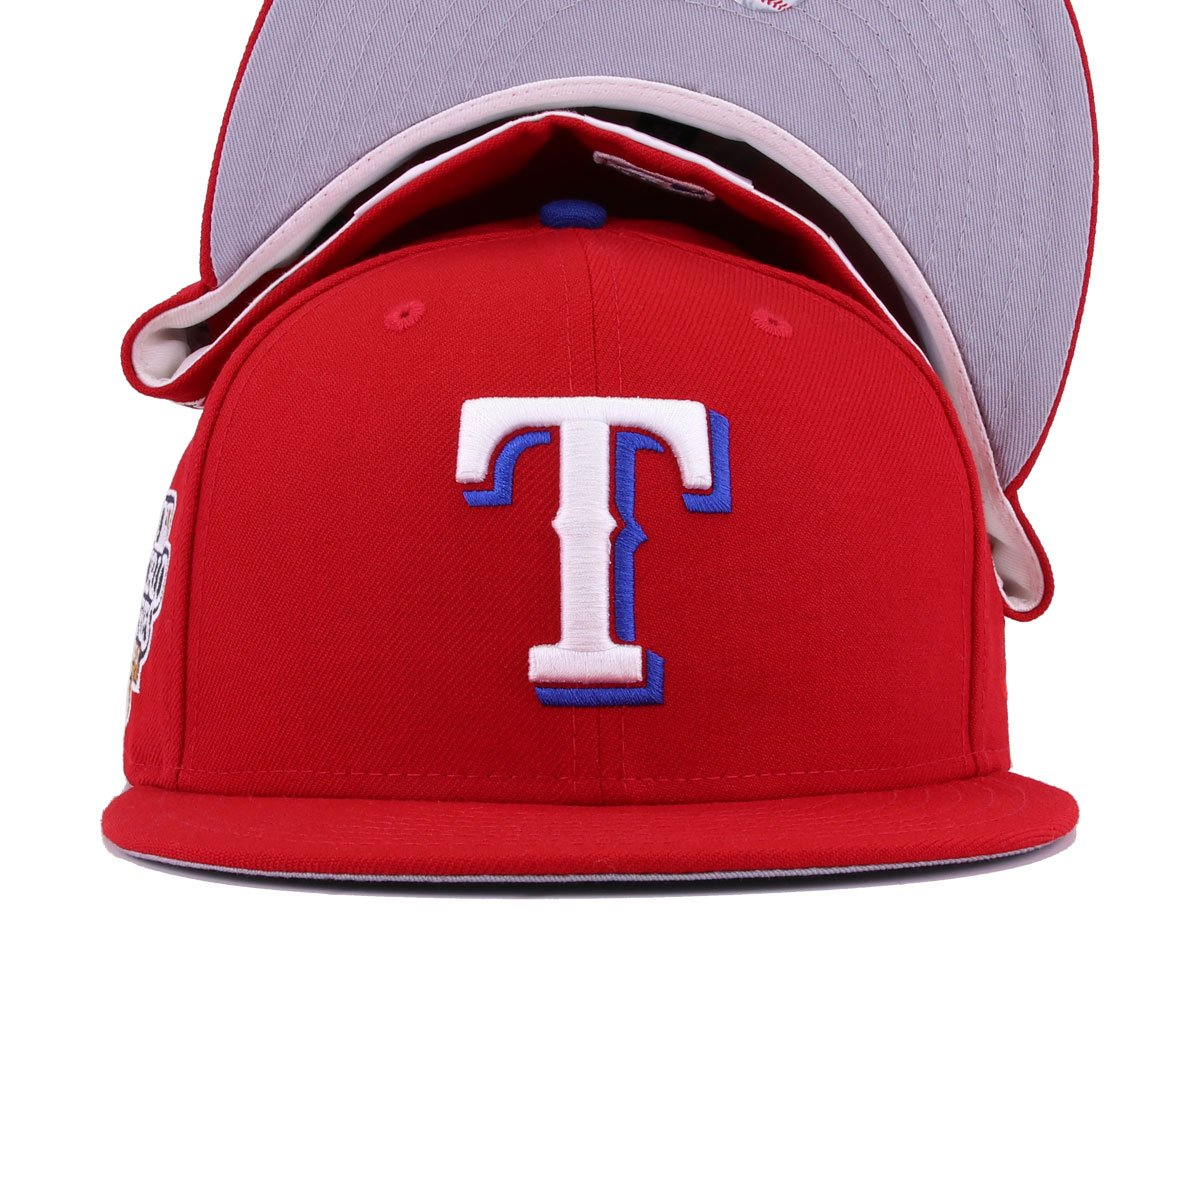 Texas Rangers Scarlet 2010 World Series New Era 59Fifty Fitted